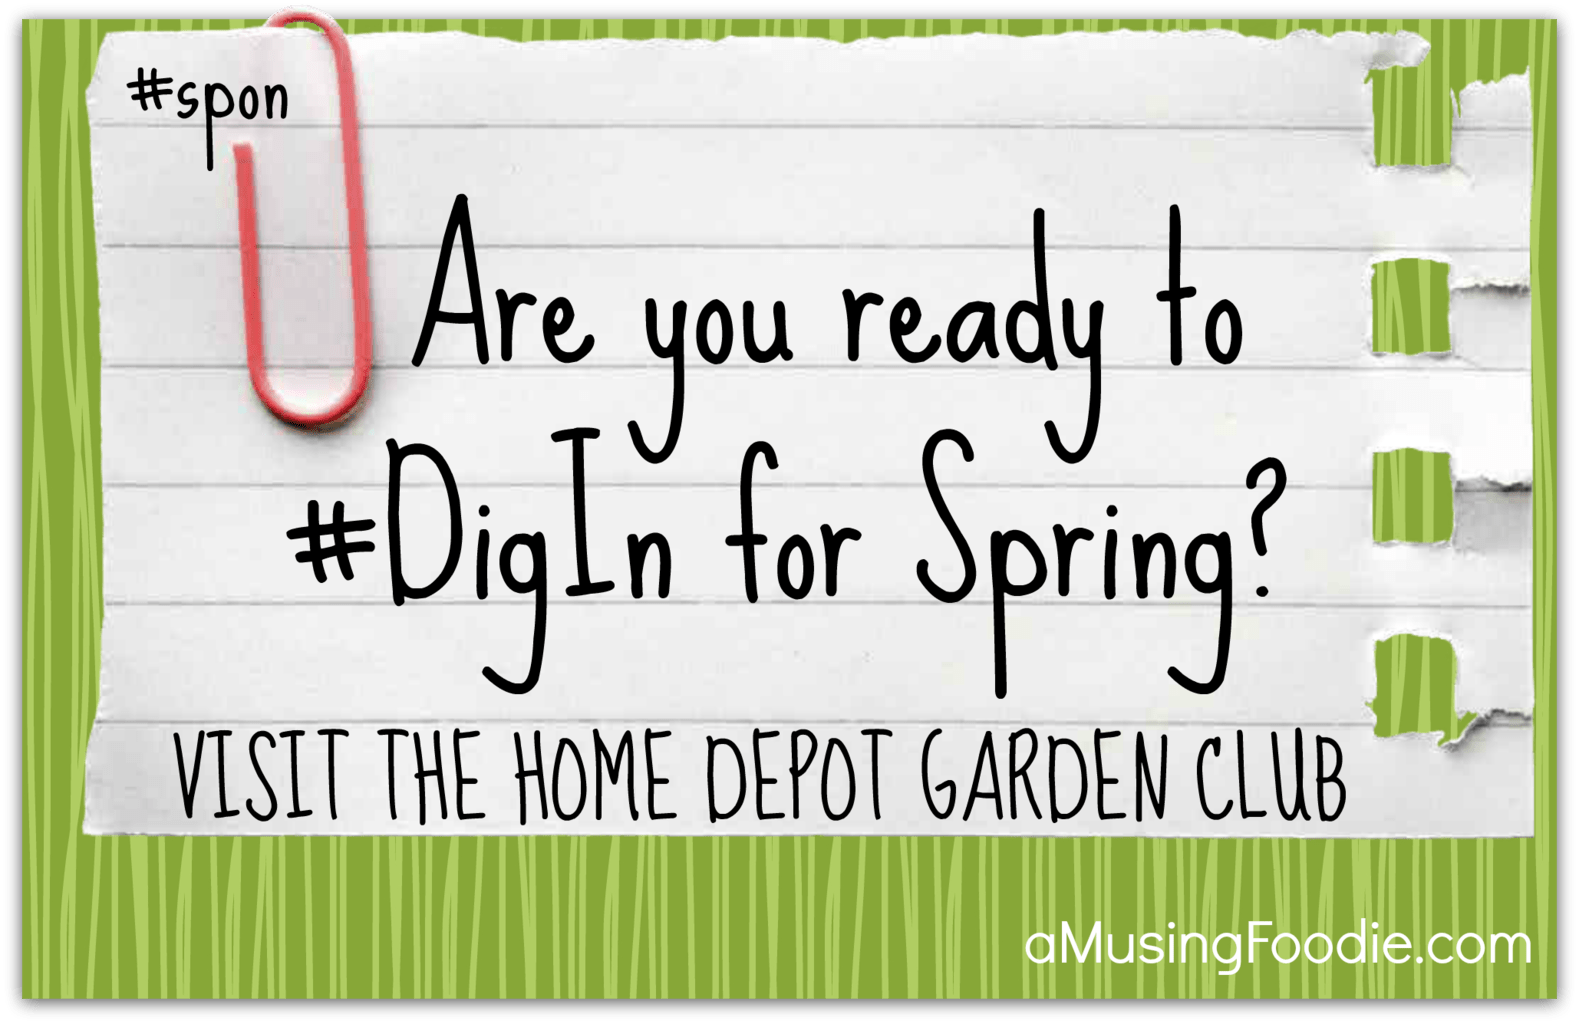 Join the Home Depot Garden Club #DigIn